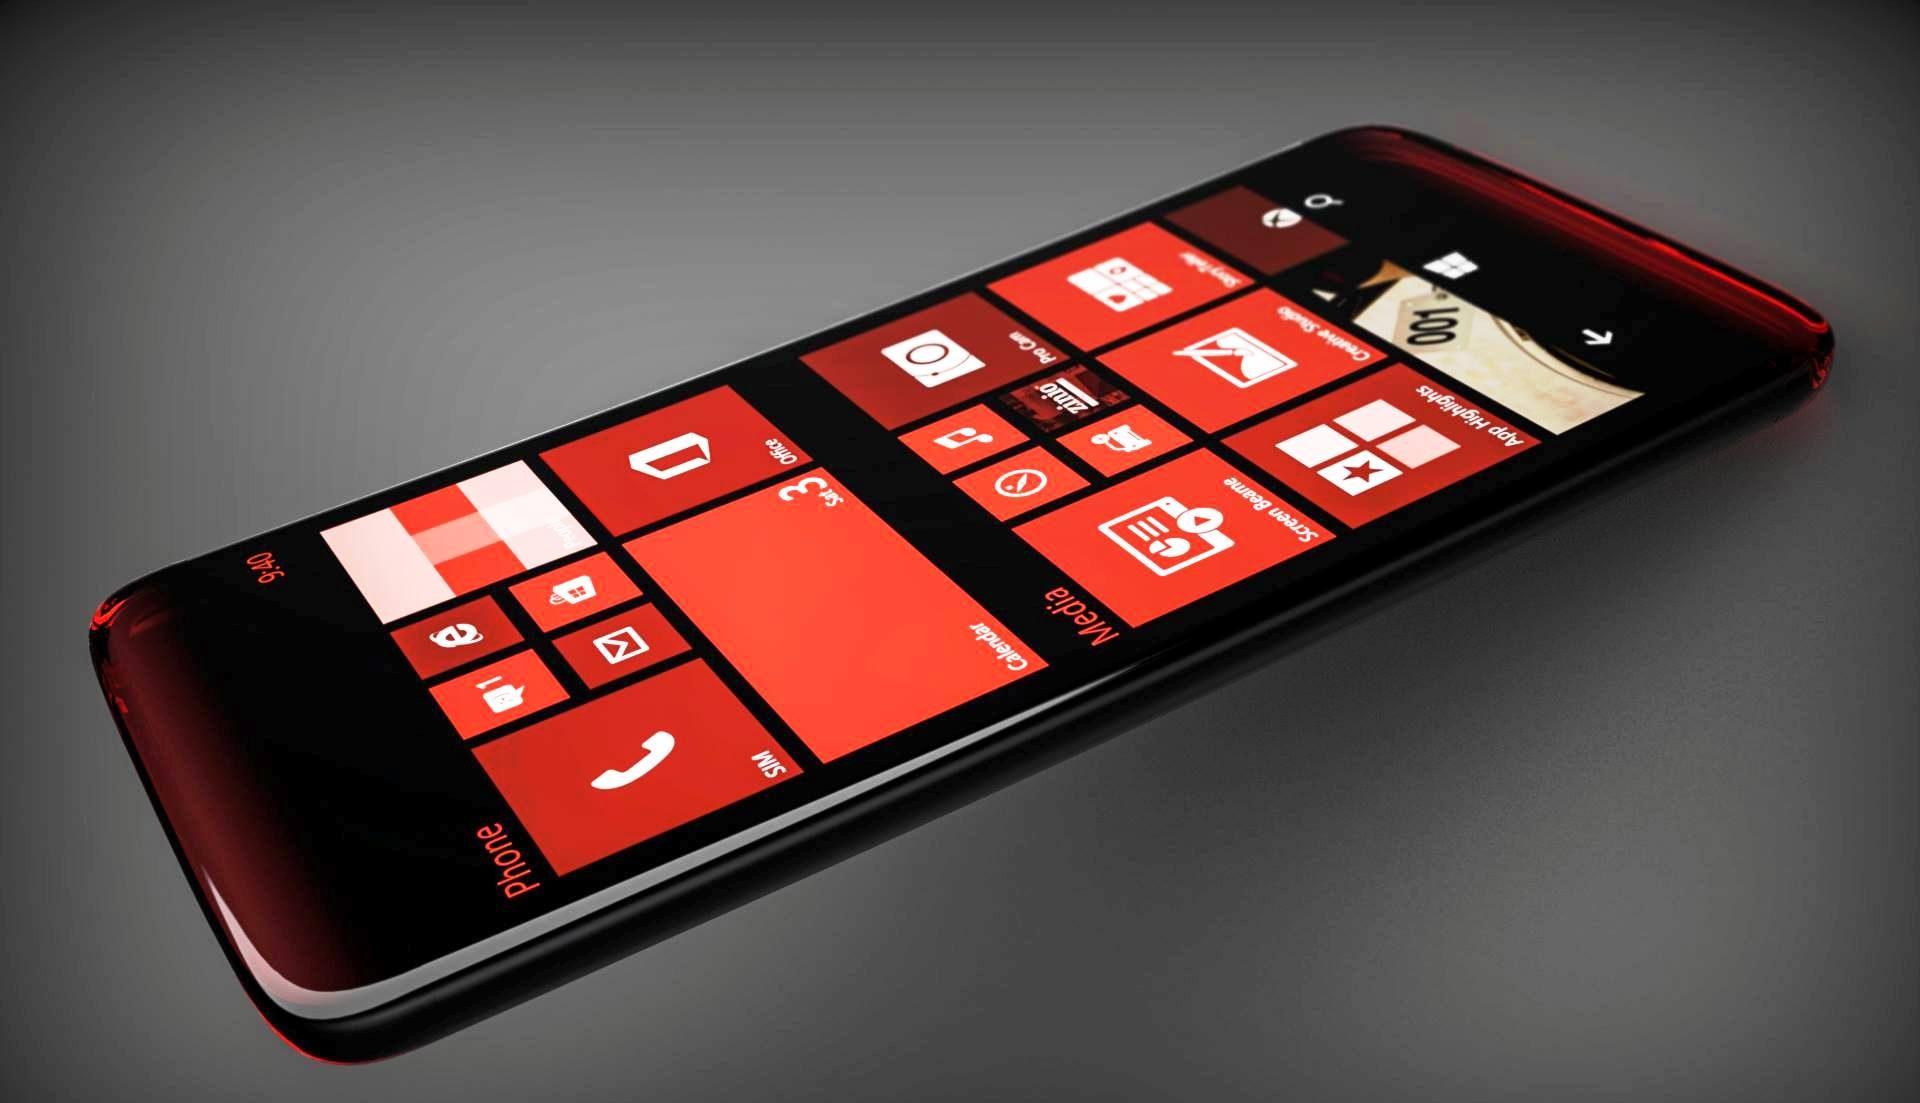 Microsoft-Launching-Two-High-End-Smartphones-This-Year-Cityman-and-Talkman